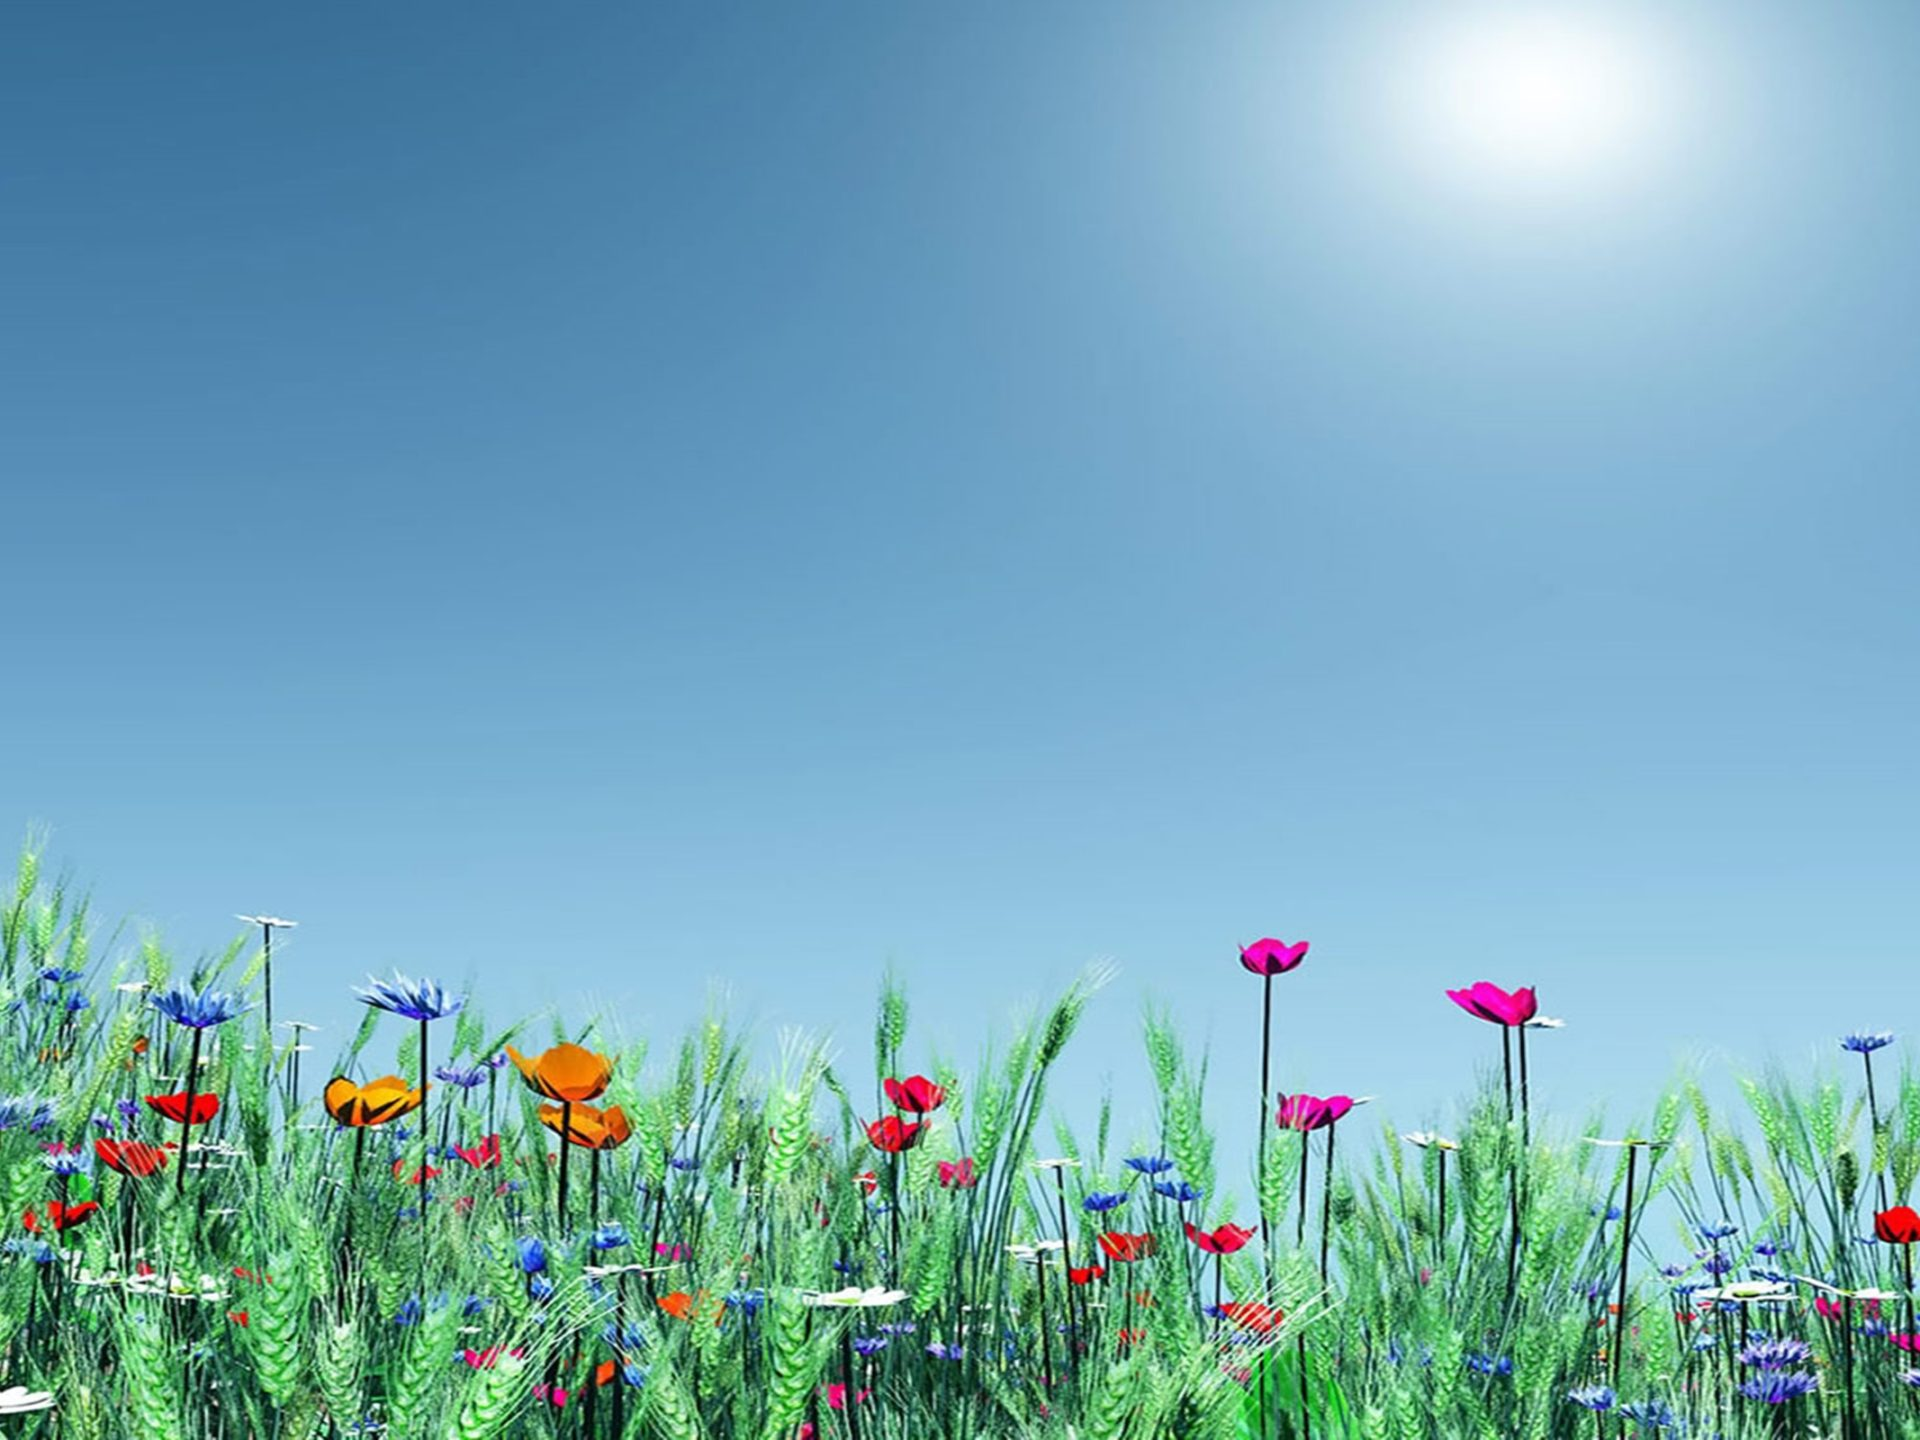 1366x768 Wallpapers Hd Cars Spring Meadow Flowers Poppies Nature Hd Wallpapers